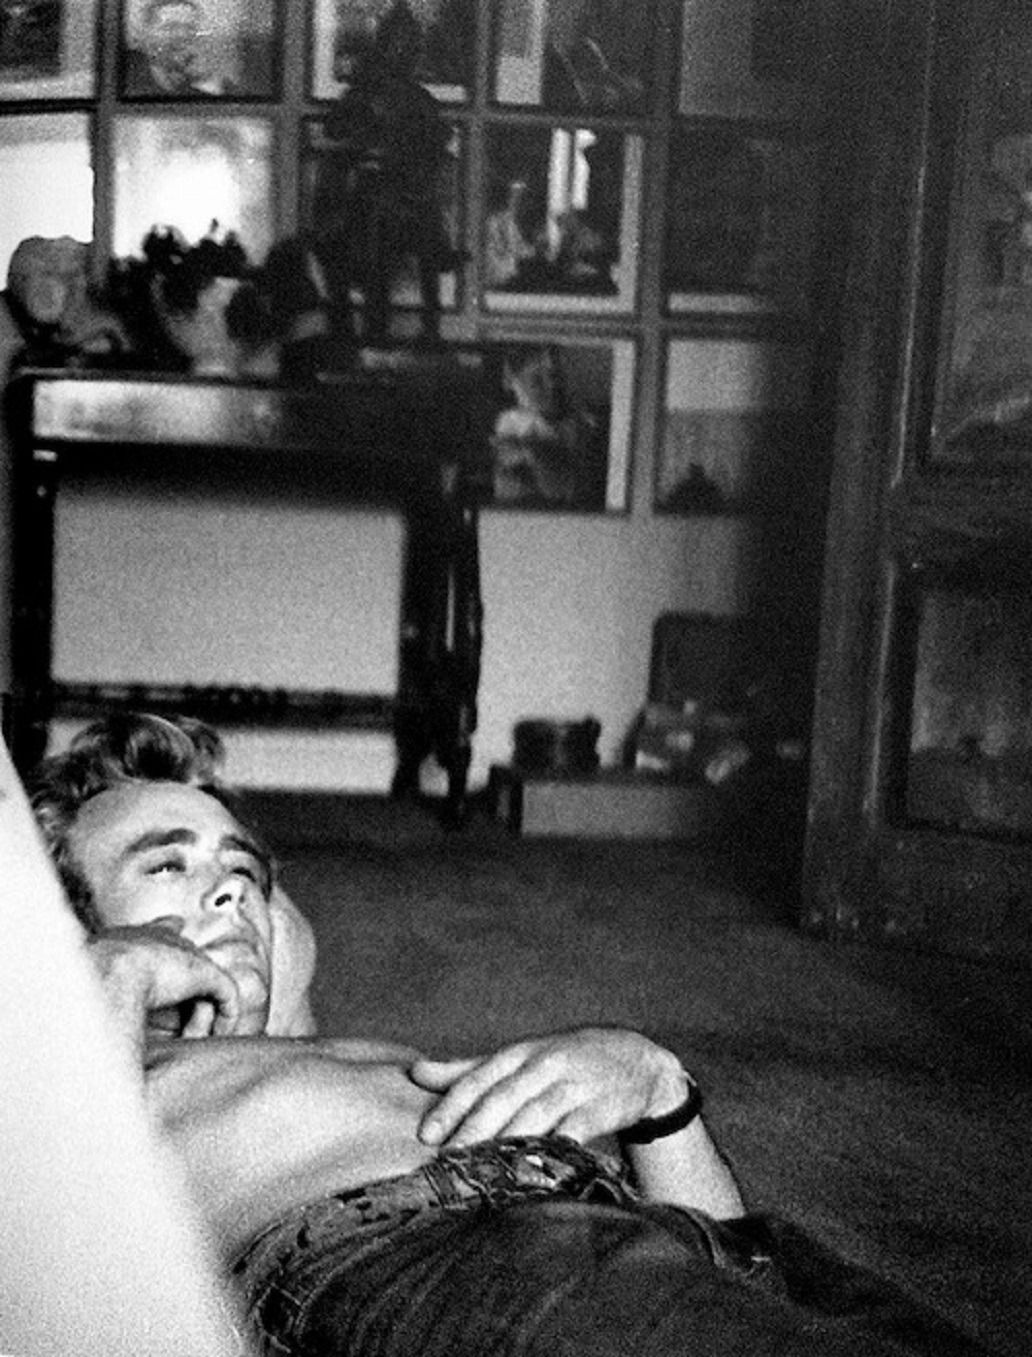 Where Did James Dean Die